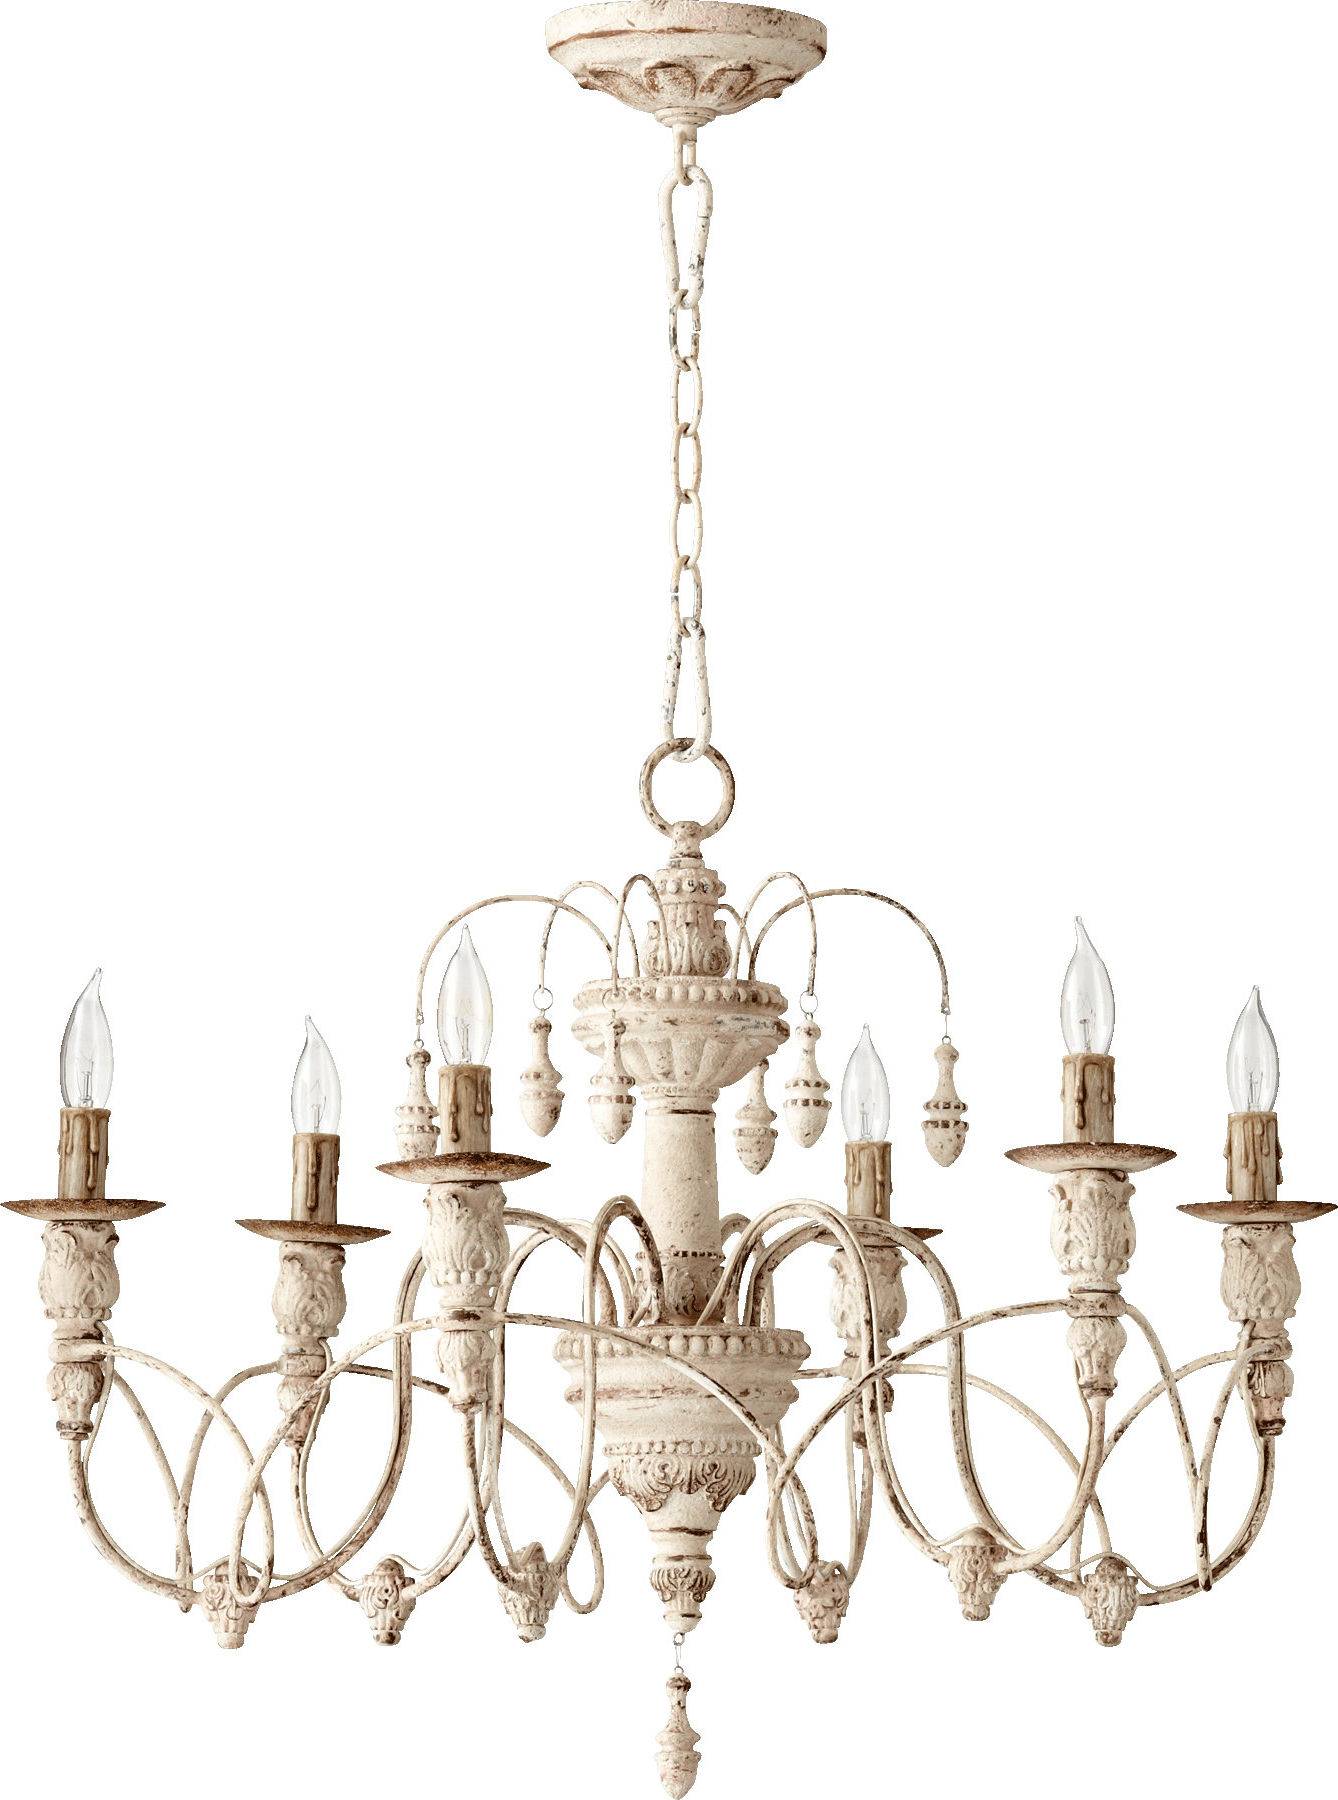 Paladino 6 Light Chandeliers Within Current Paladino 6 Light Candle Style Chandelier (View 2 of 20)